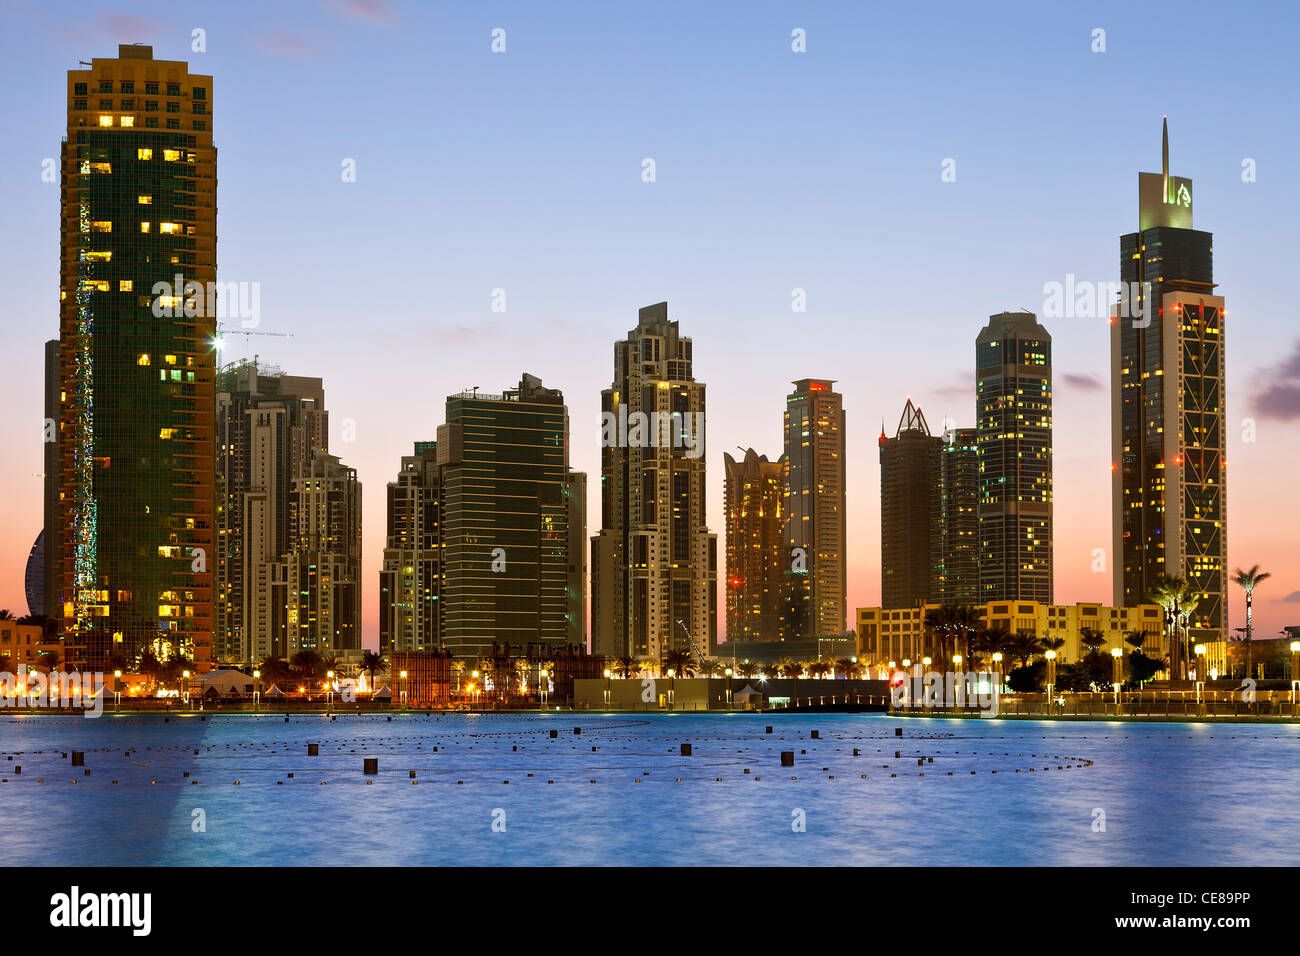 Dubai, Skyscrapers at Night - Stock Image